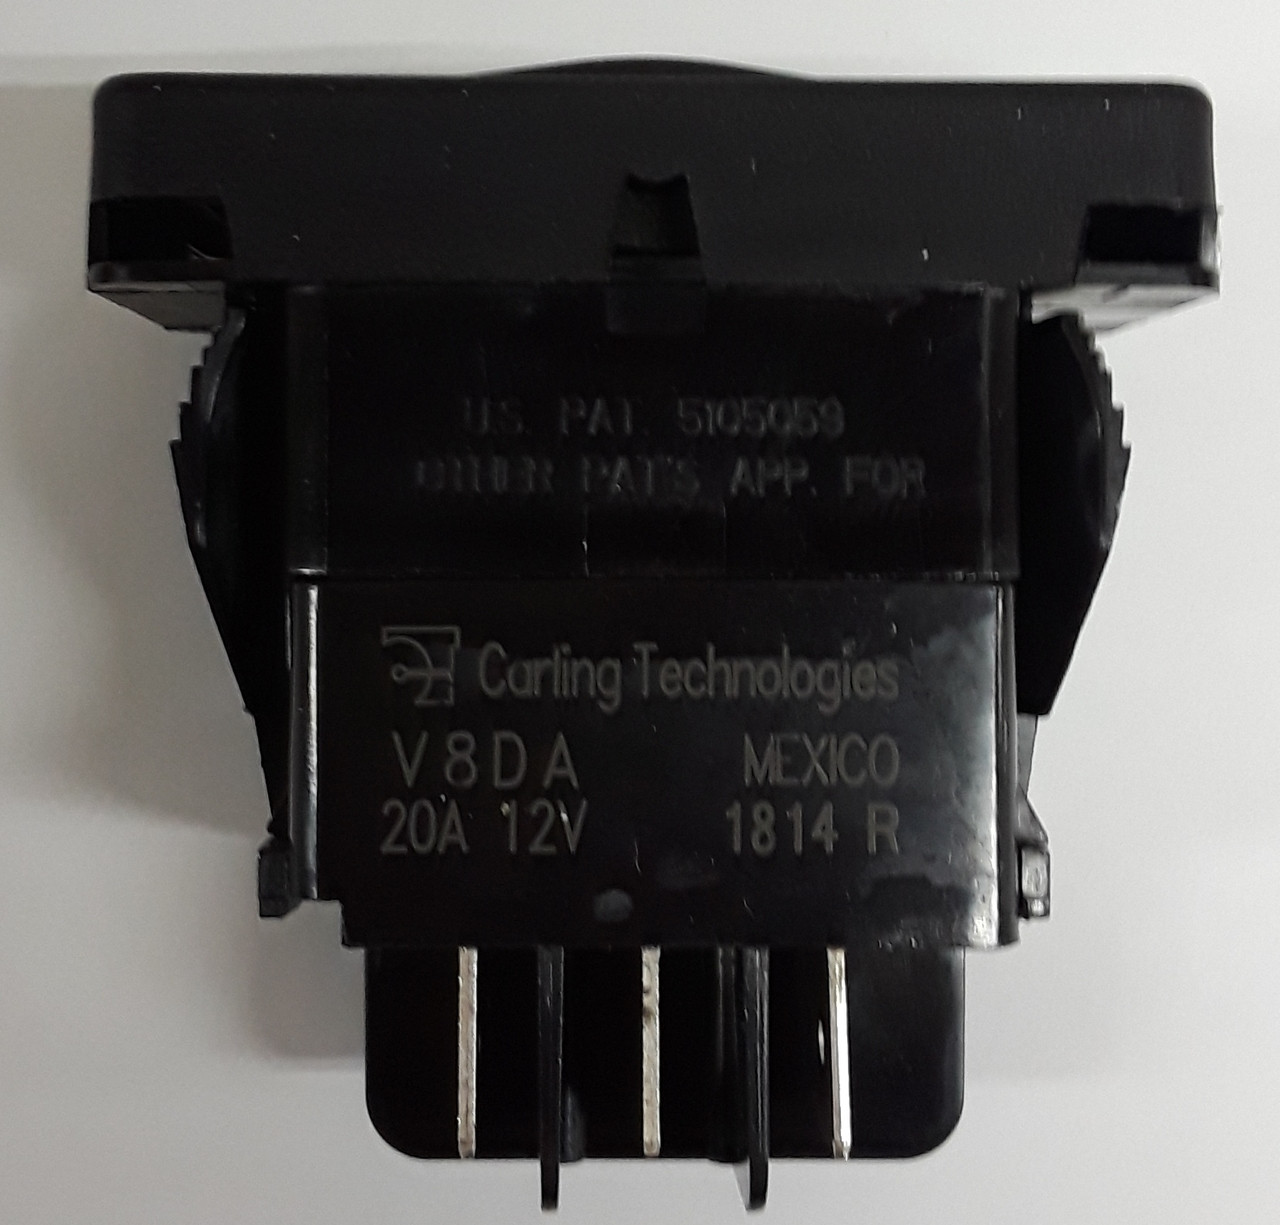 V8das001 6zzxx 1xx Xpc1 Contura Xi Double Momentary Rocker Switch Toggle Switches Specialty Circuit Dpdt Open Close Imprinted On Actuator